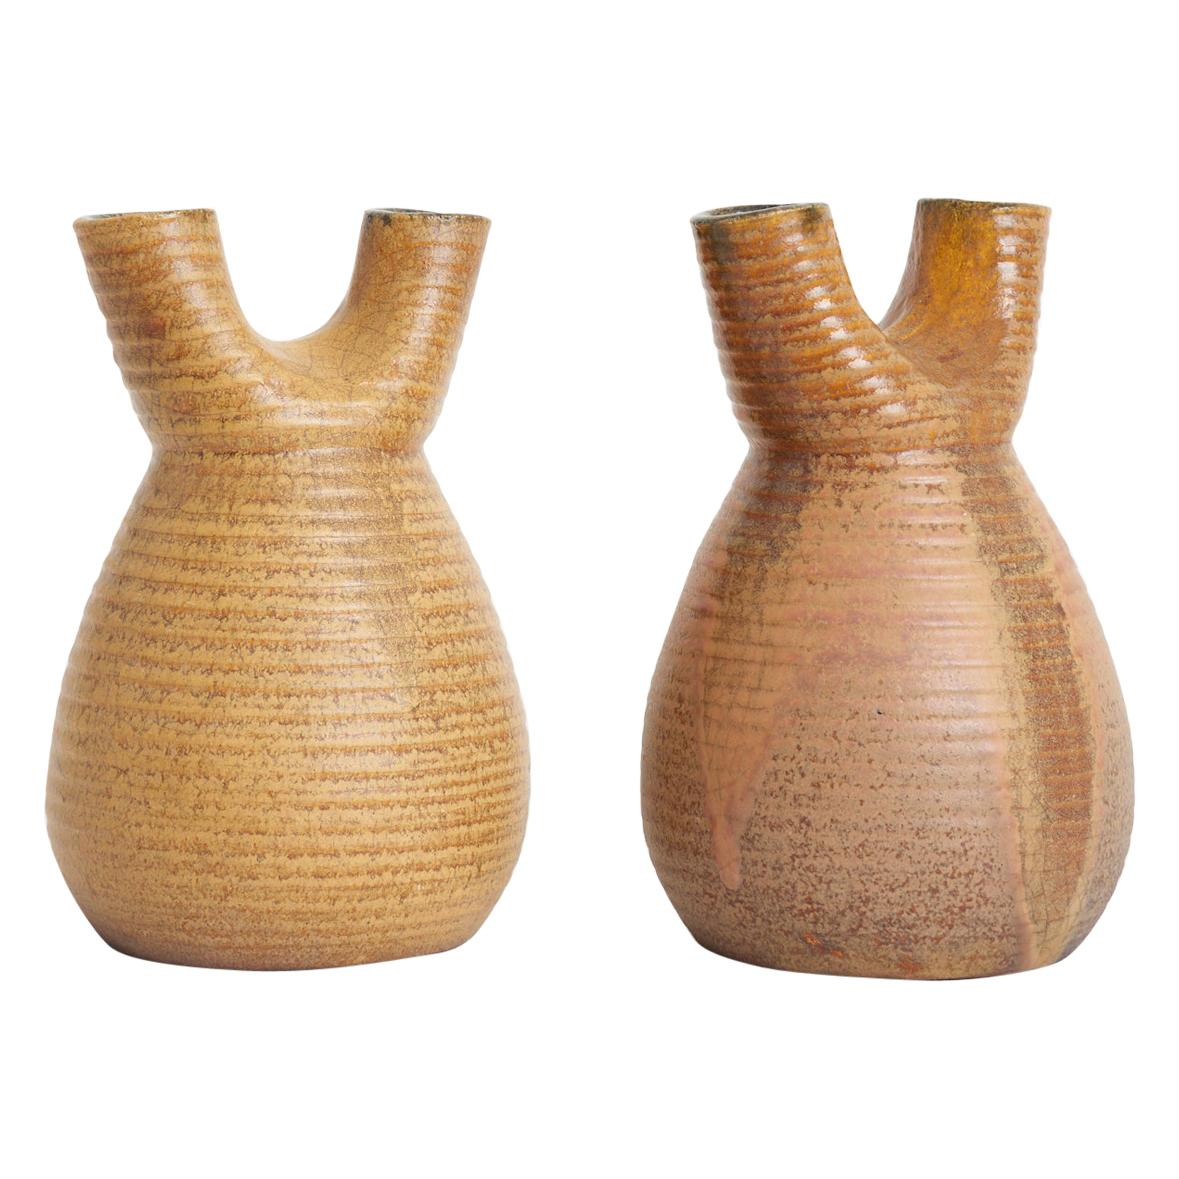 Pair of Ceramic Vases by Accolay